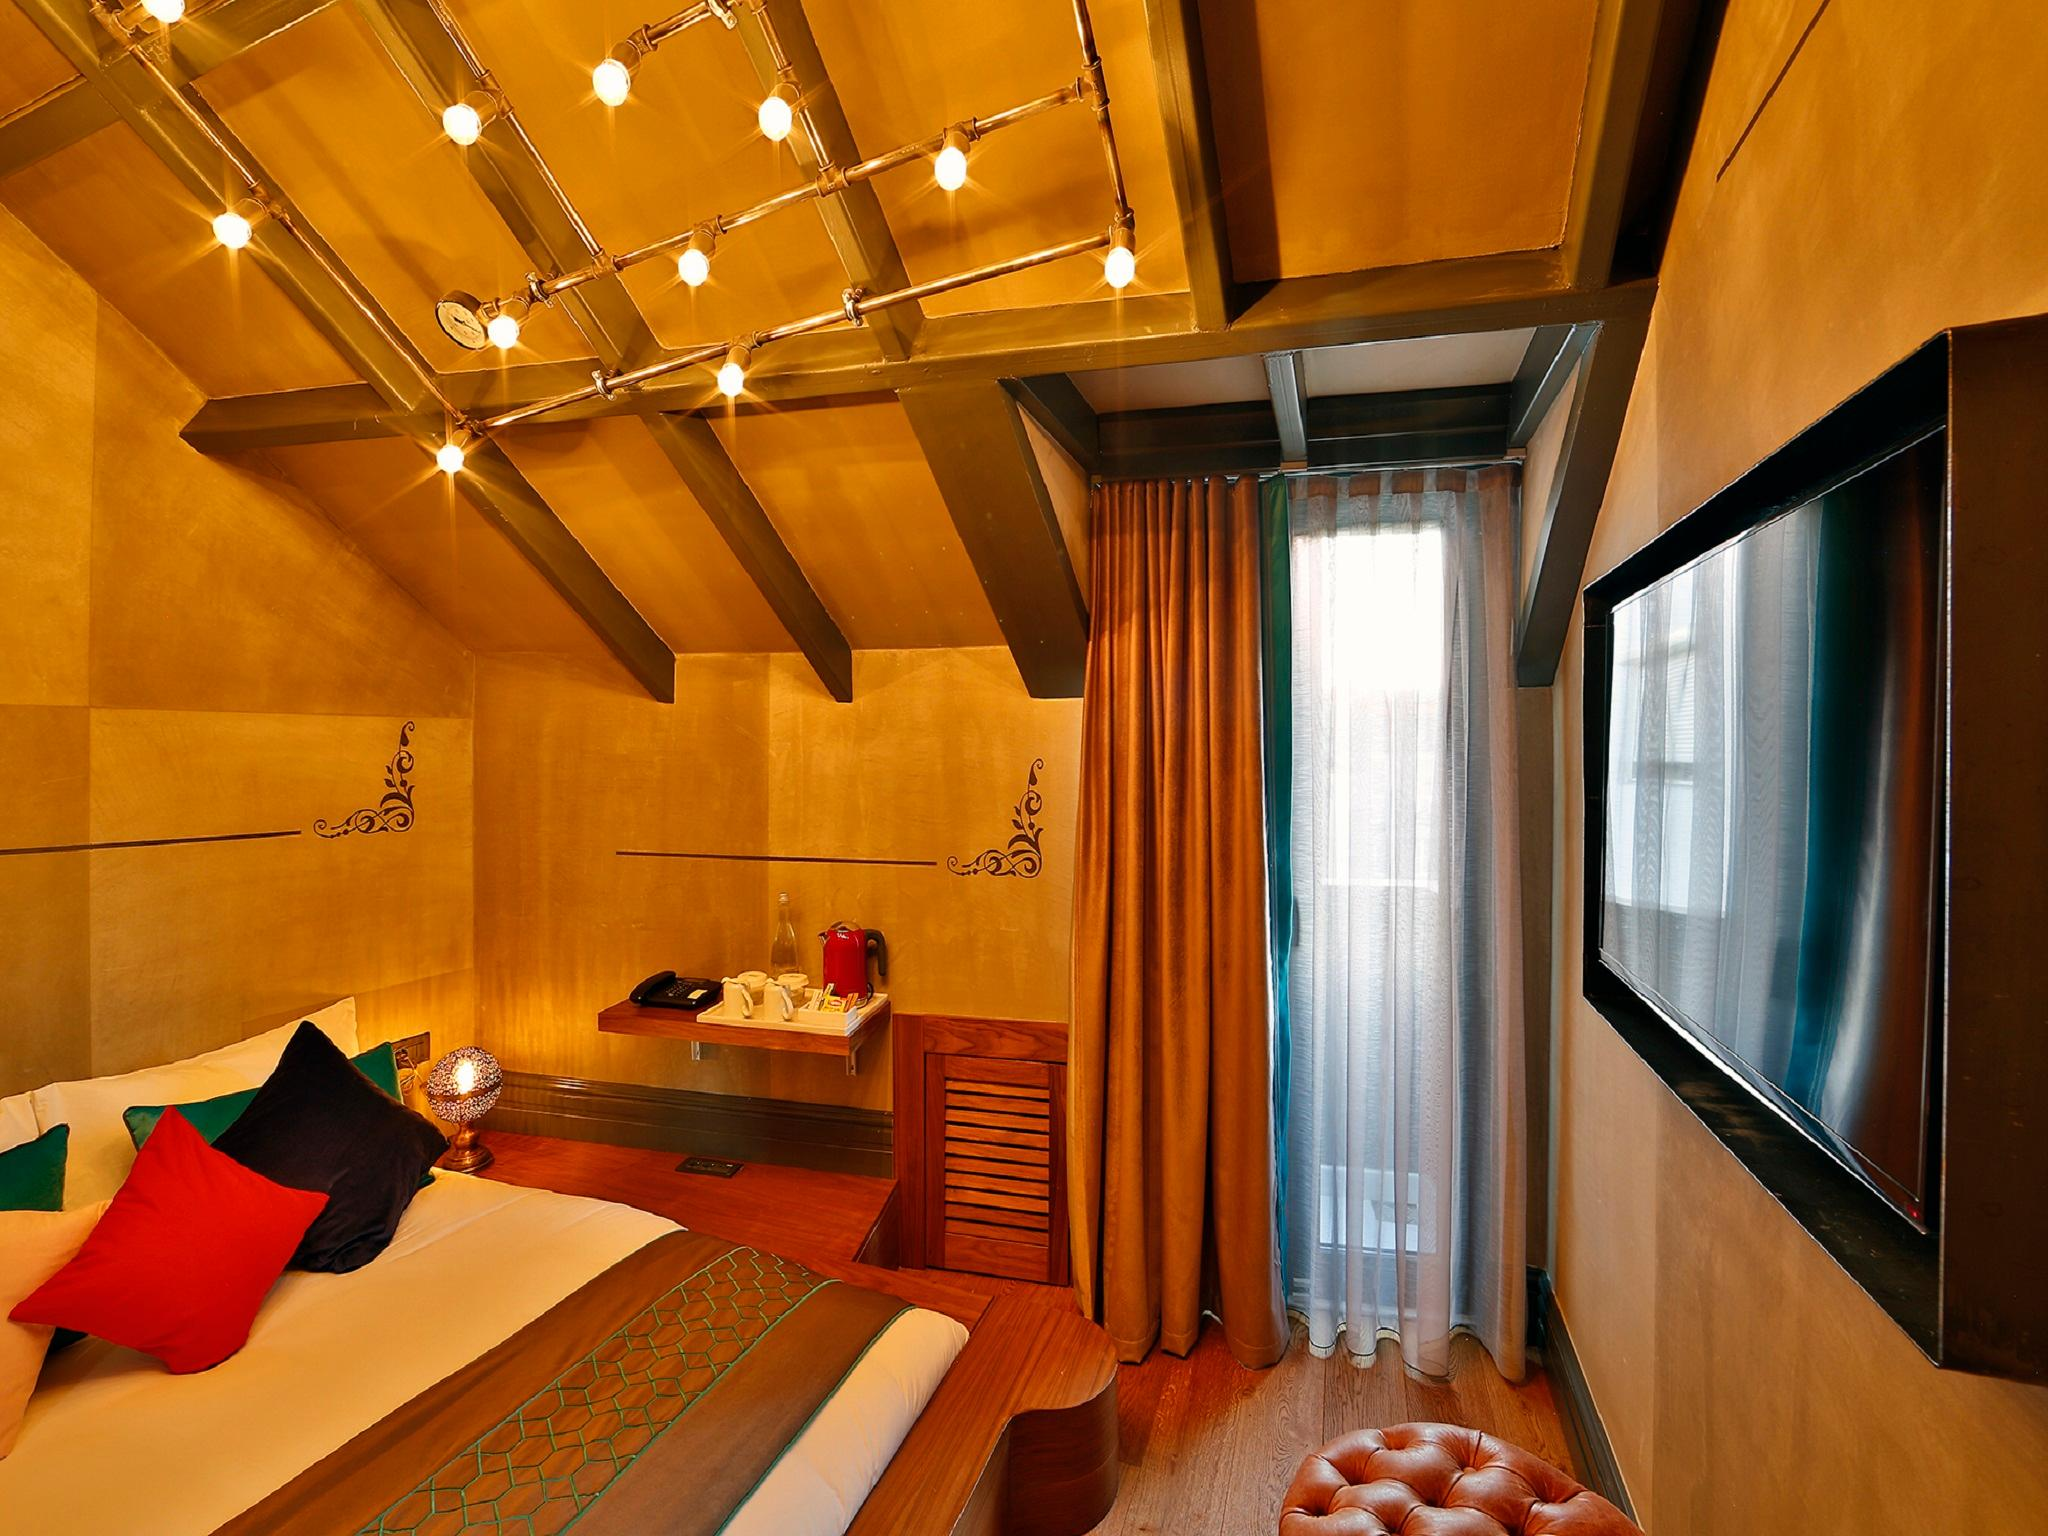 Sanat hotel pera in istanbul room deals photos reviews for Cube suites istanbul